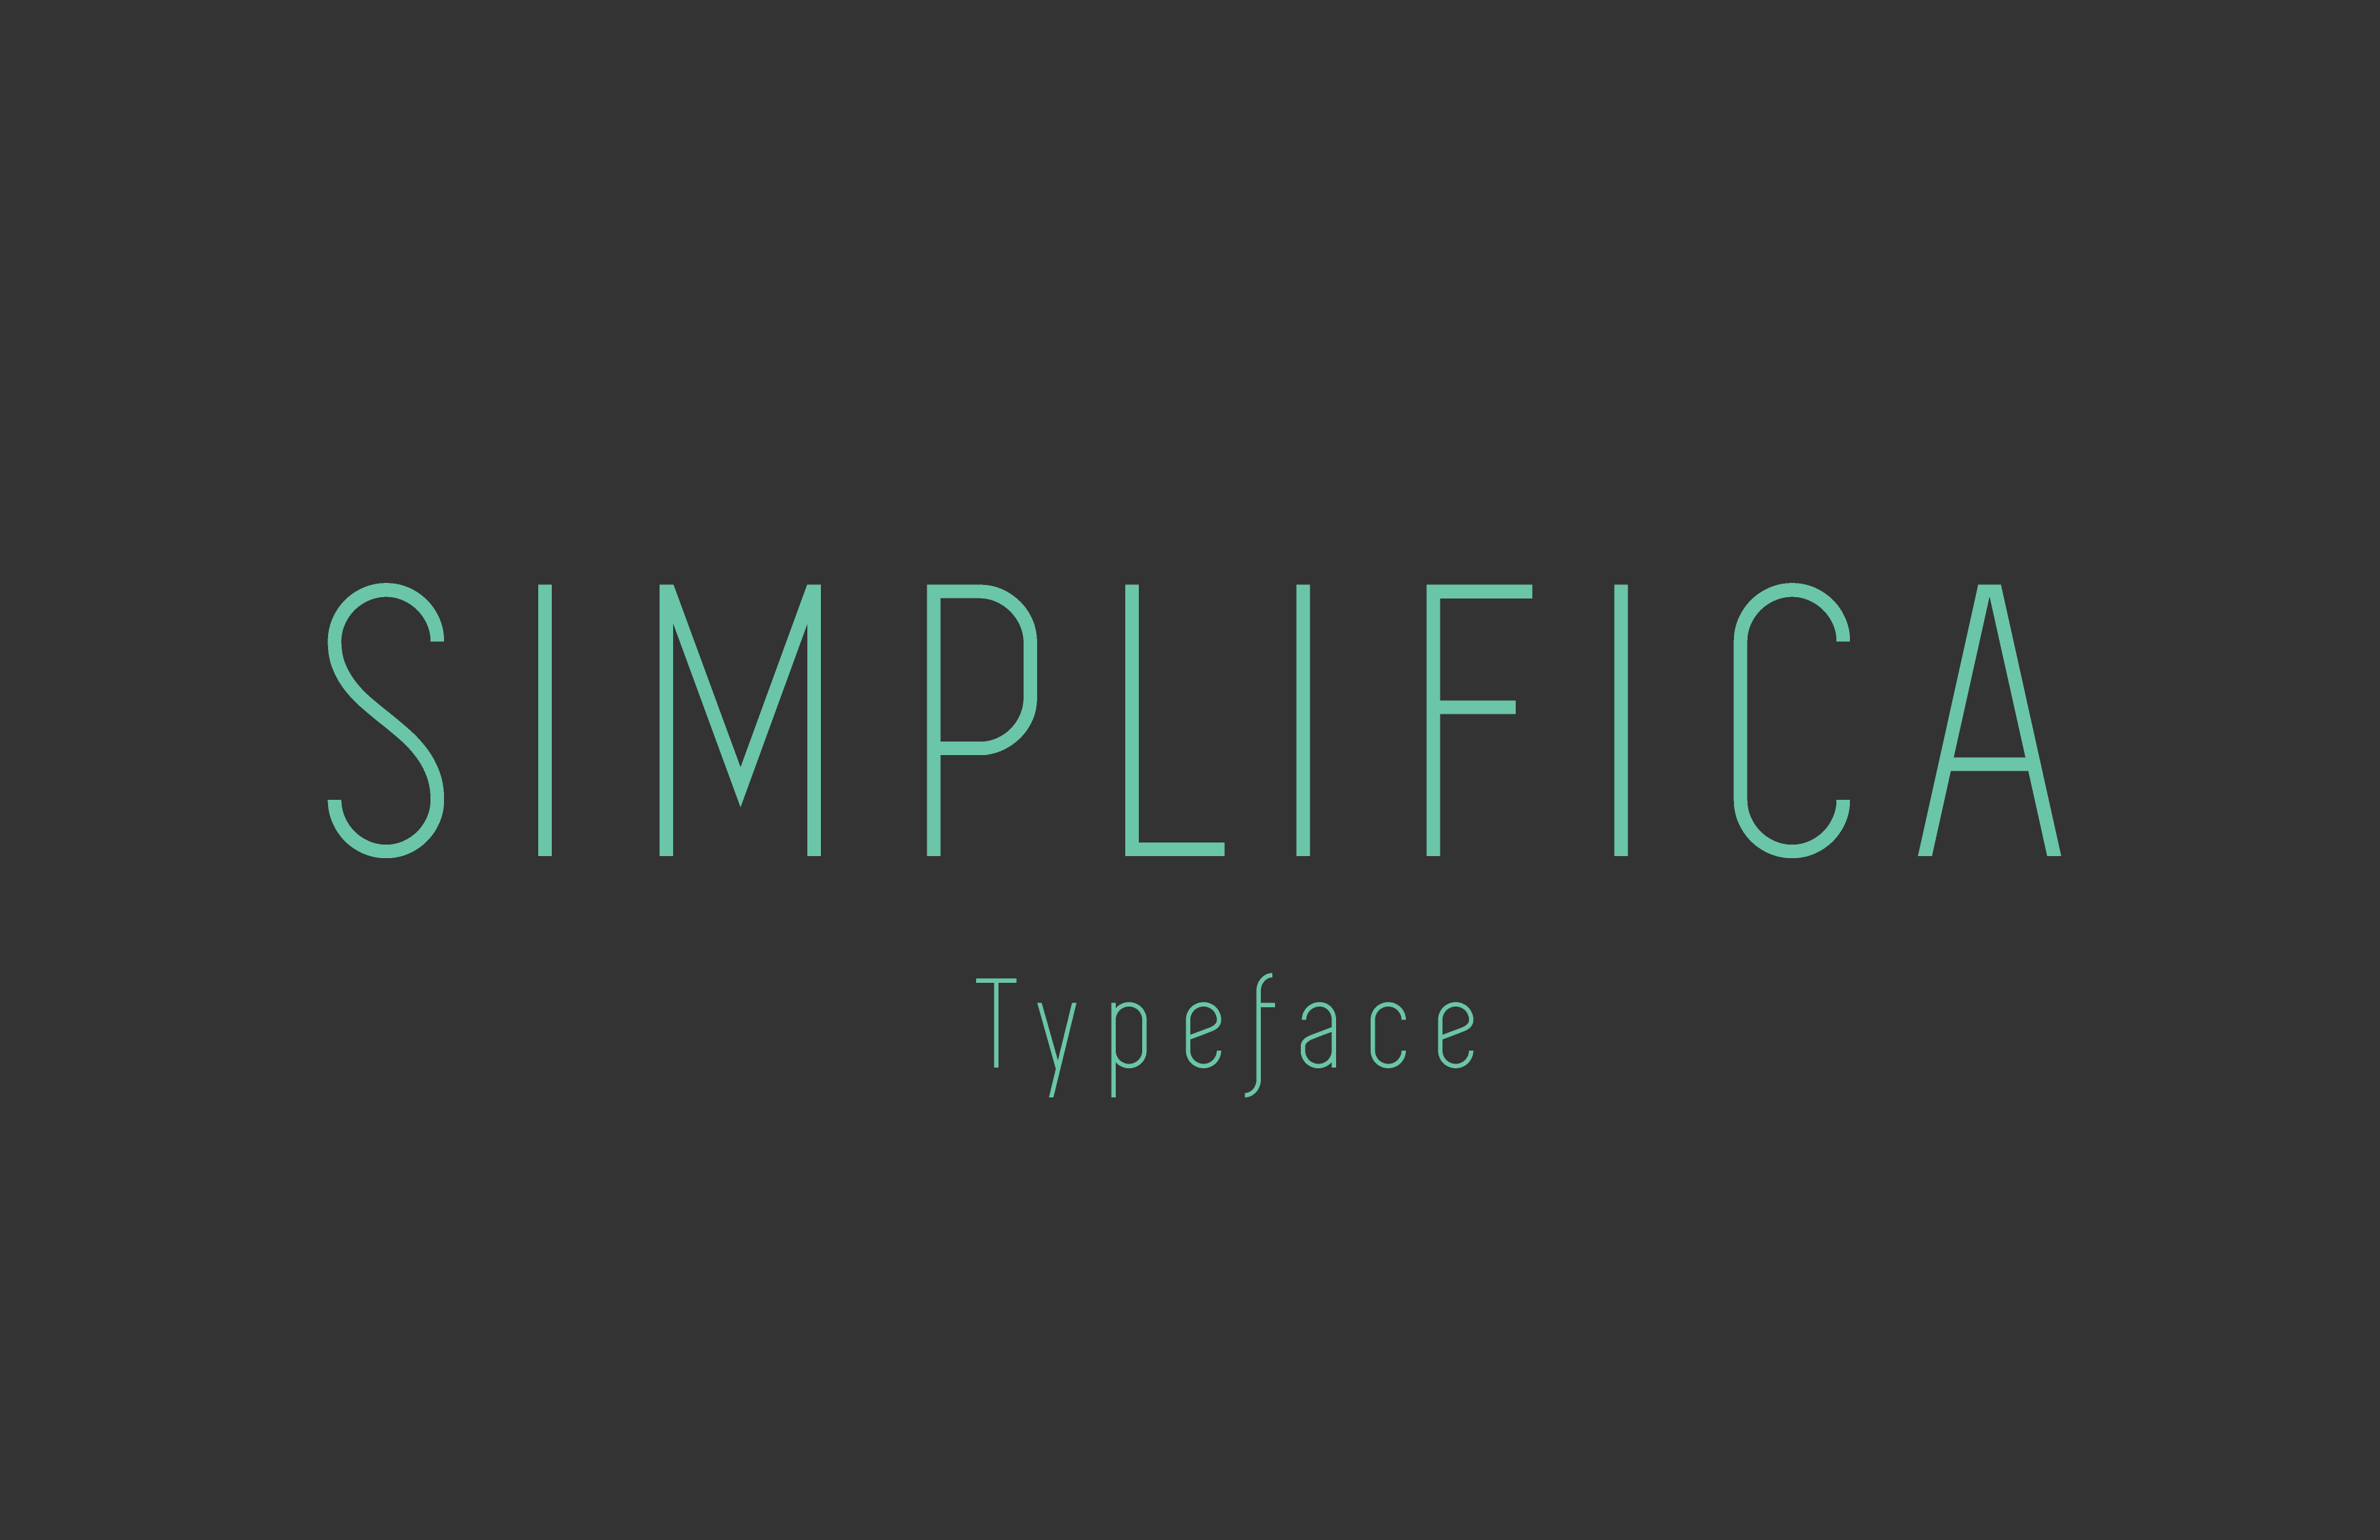 SIMPLIFICA Typeface is a slightly condensed sans-serif typeface featured by an uniform and thin line width. Its high positioned capsheight and ascender favours legibility. A fine, simple and clear font.